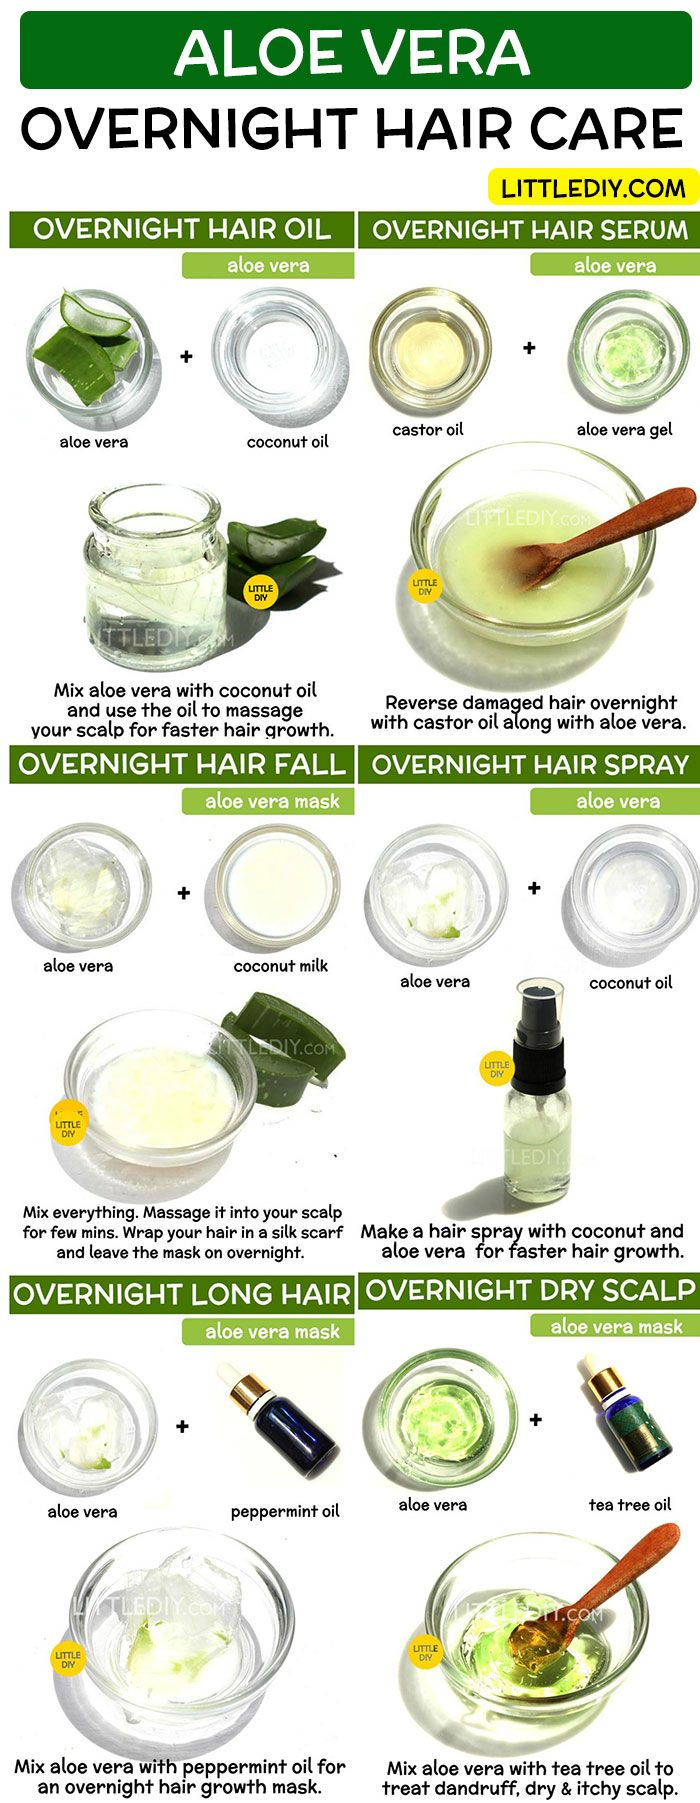 OVERNIGHT HAIR REMEDY WITH ALOE VERA